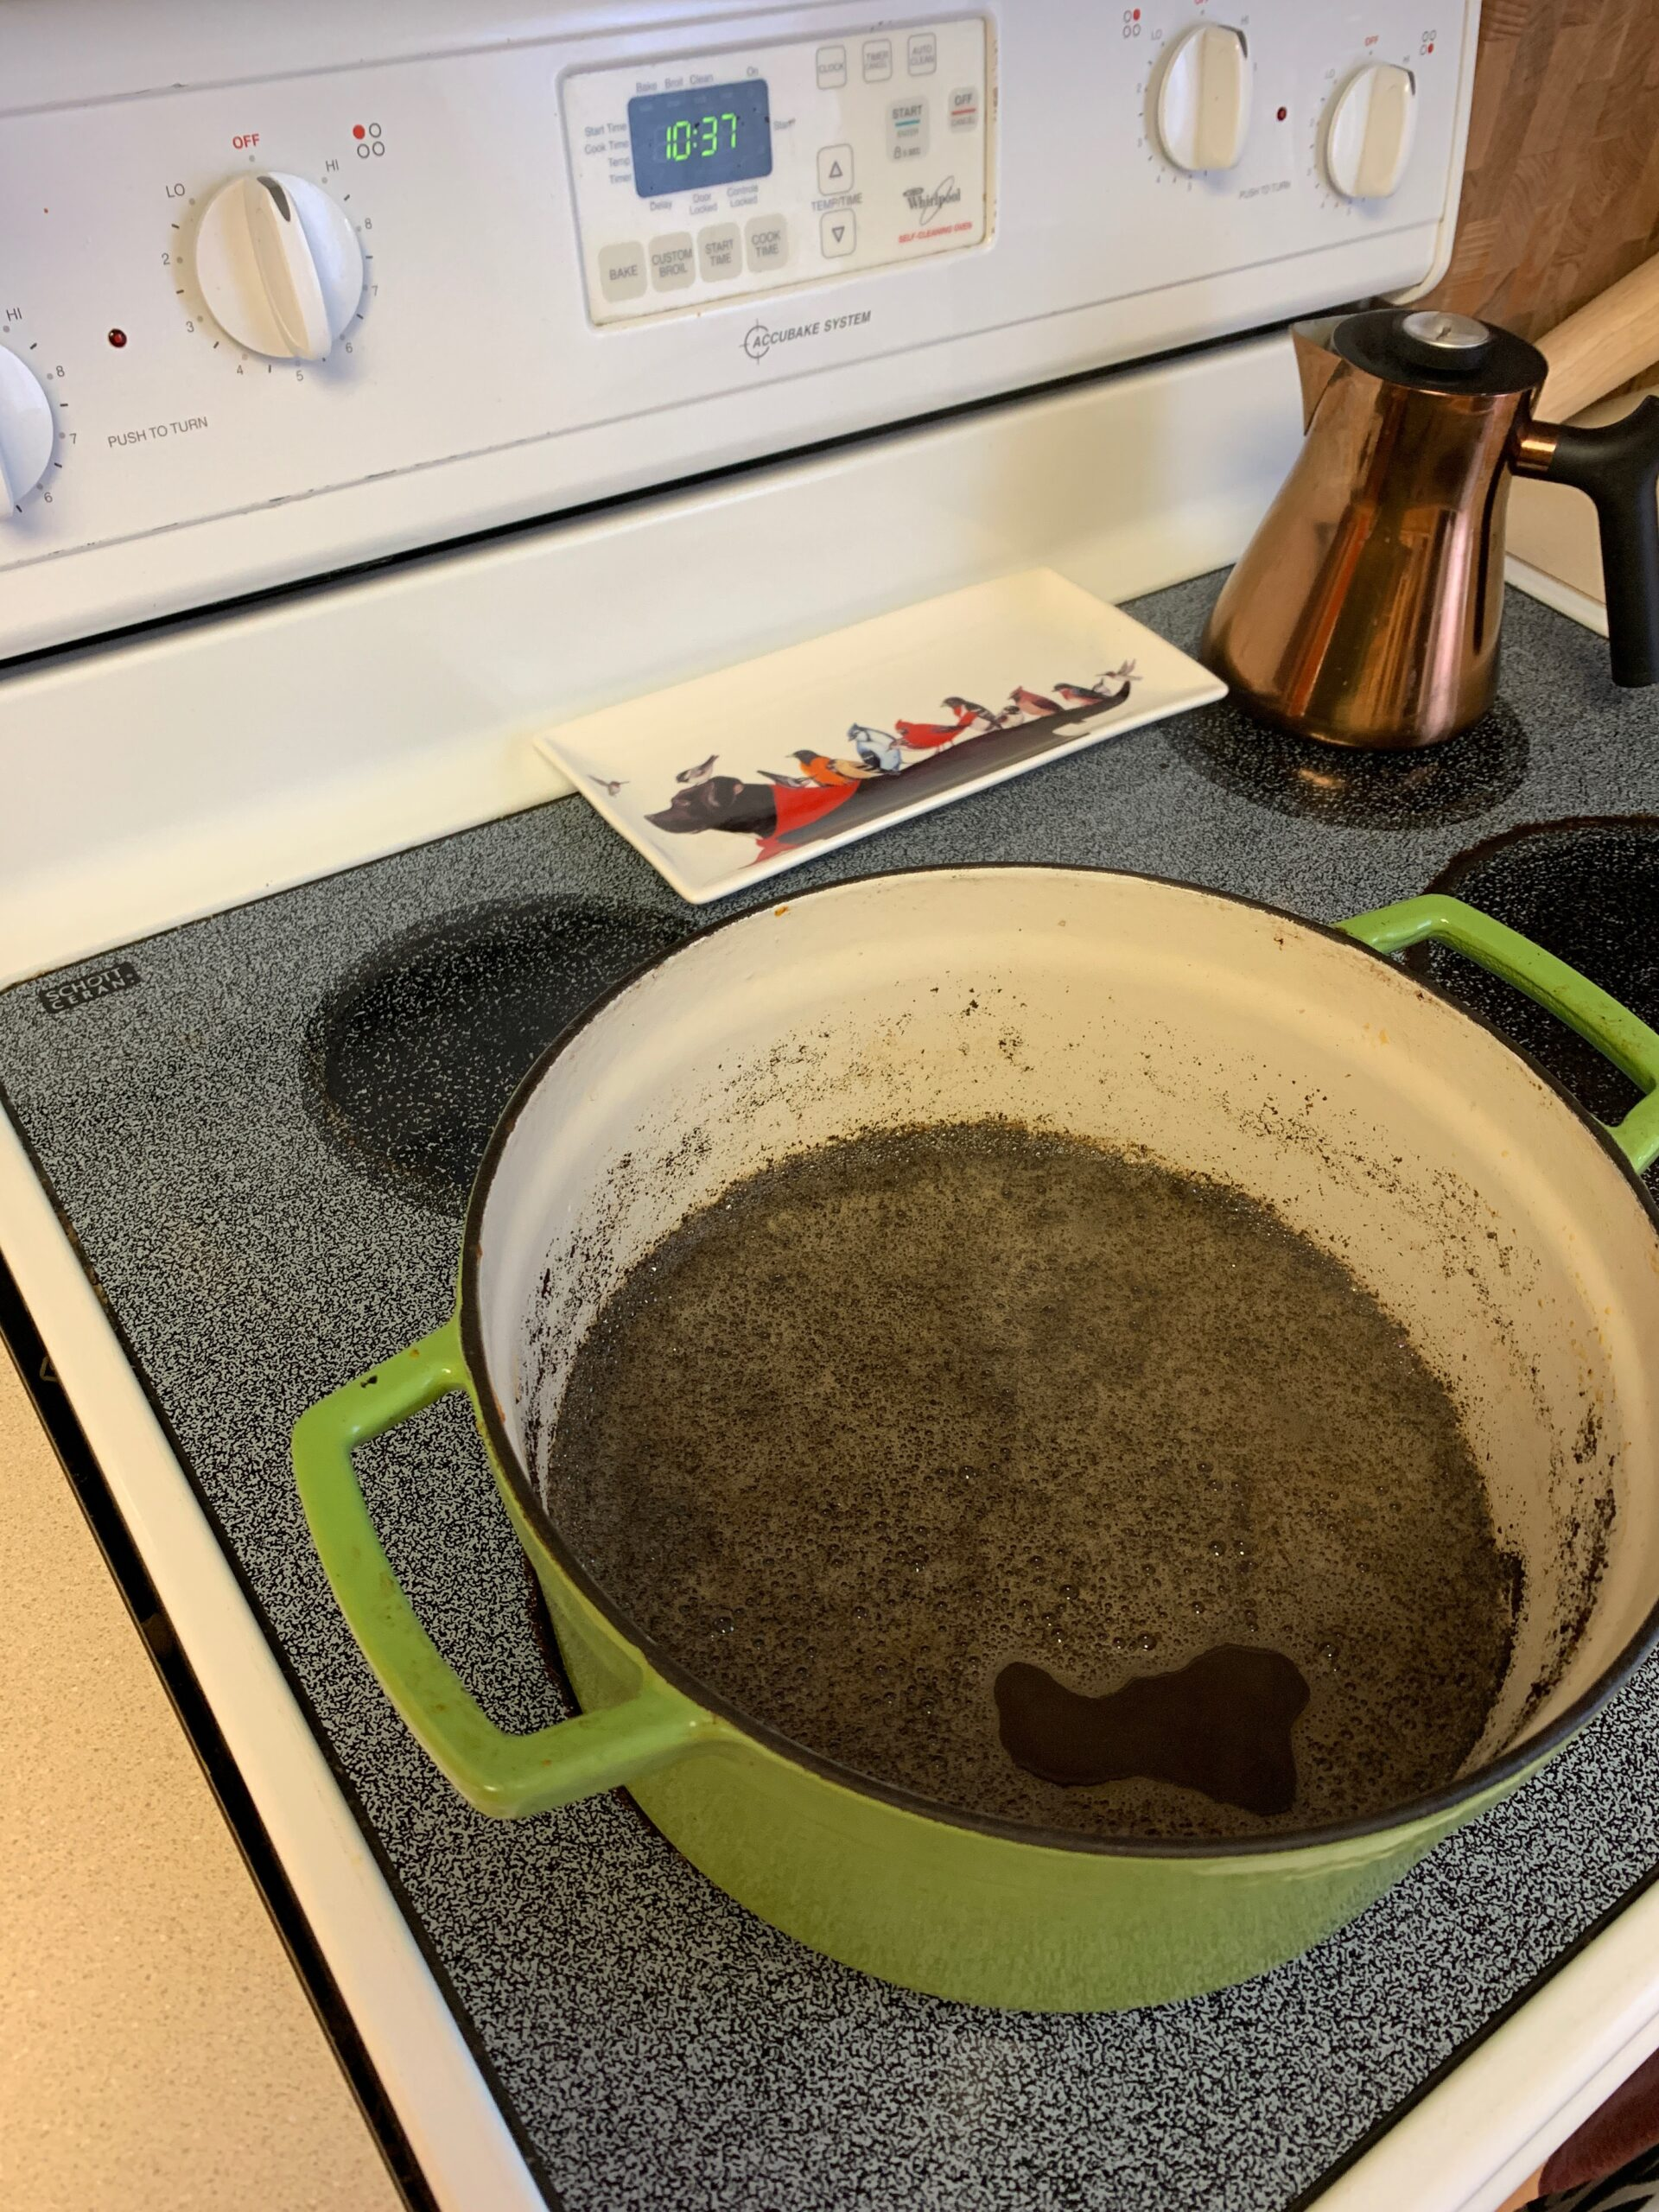 Cleaning enameled cast iron using hot water and baking soda